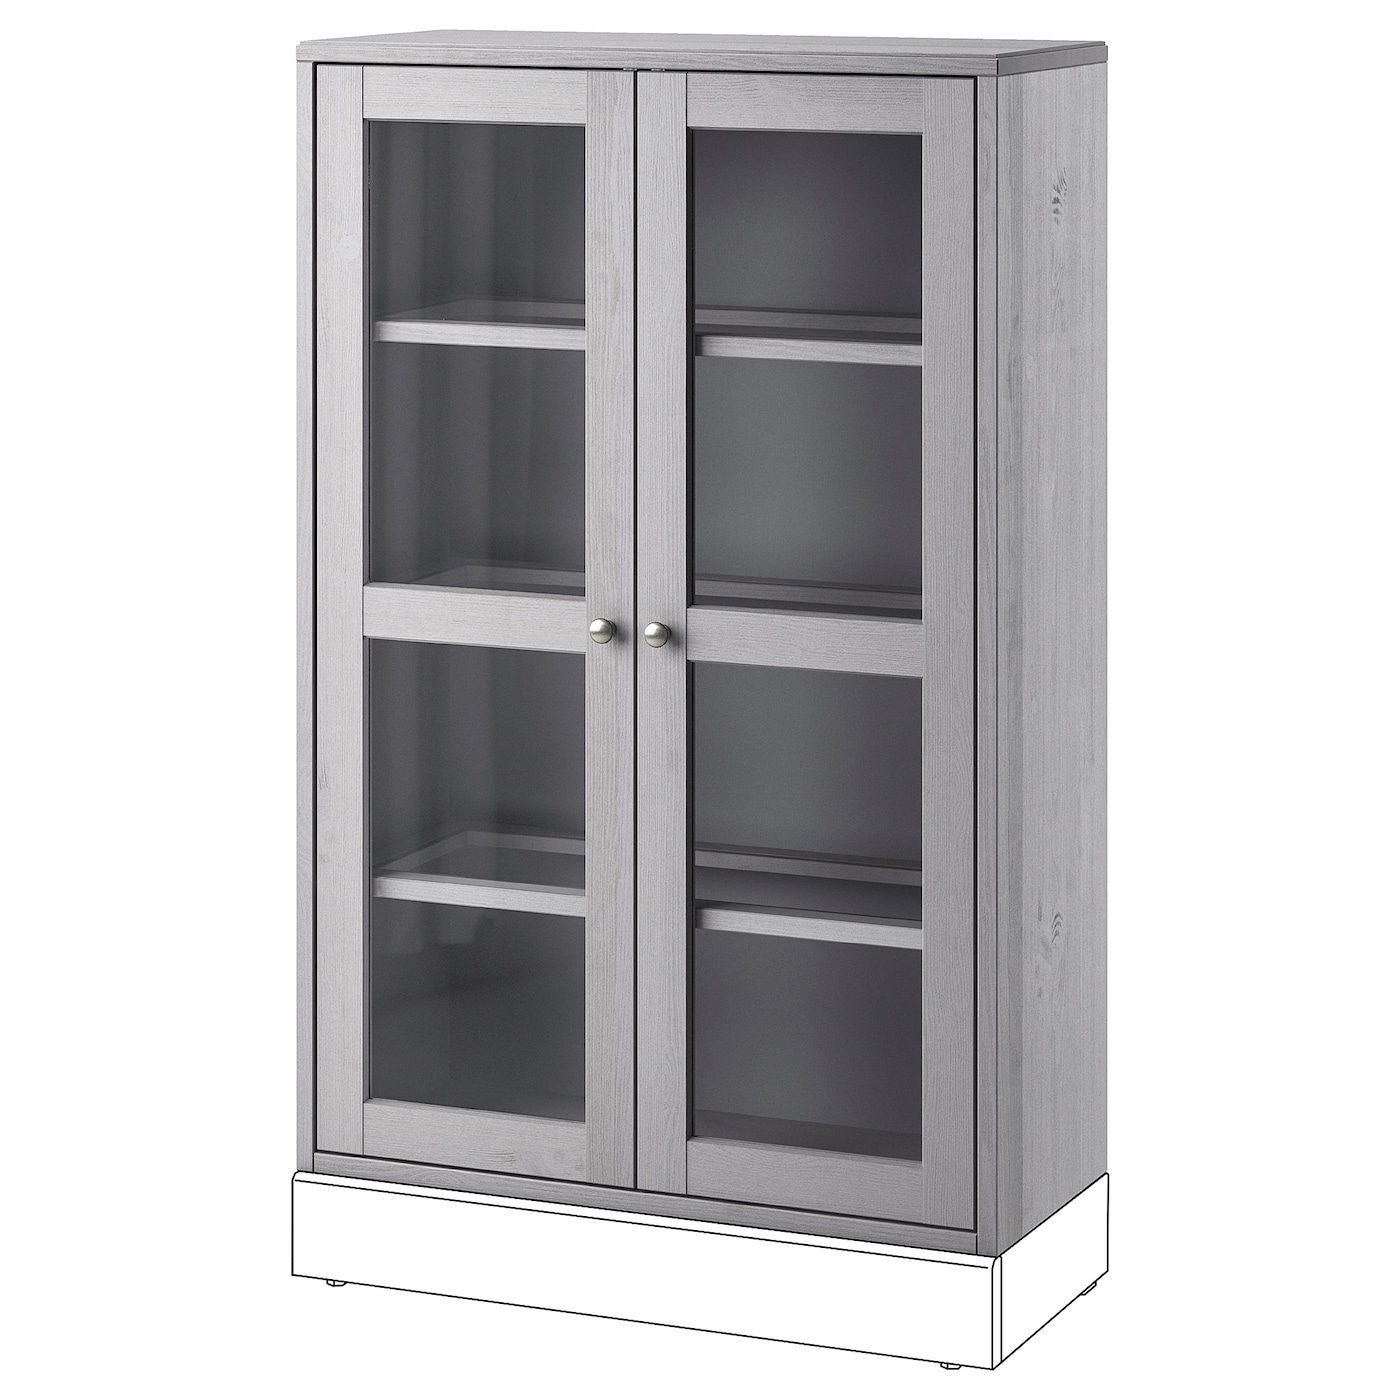 Ikea Havsta Glass Door Cabinet